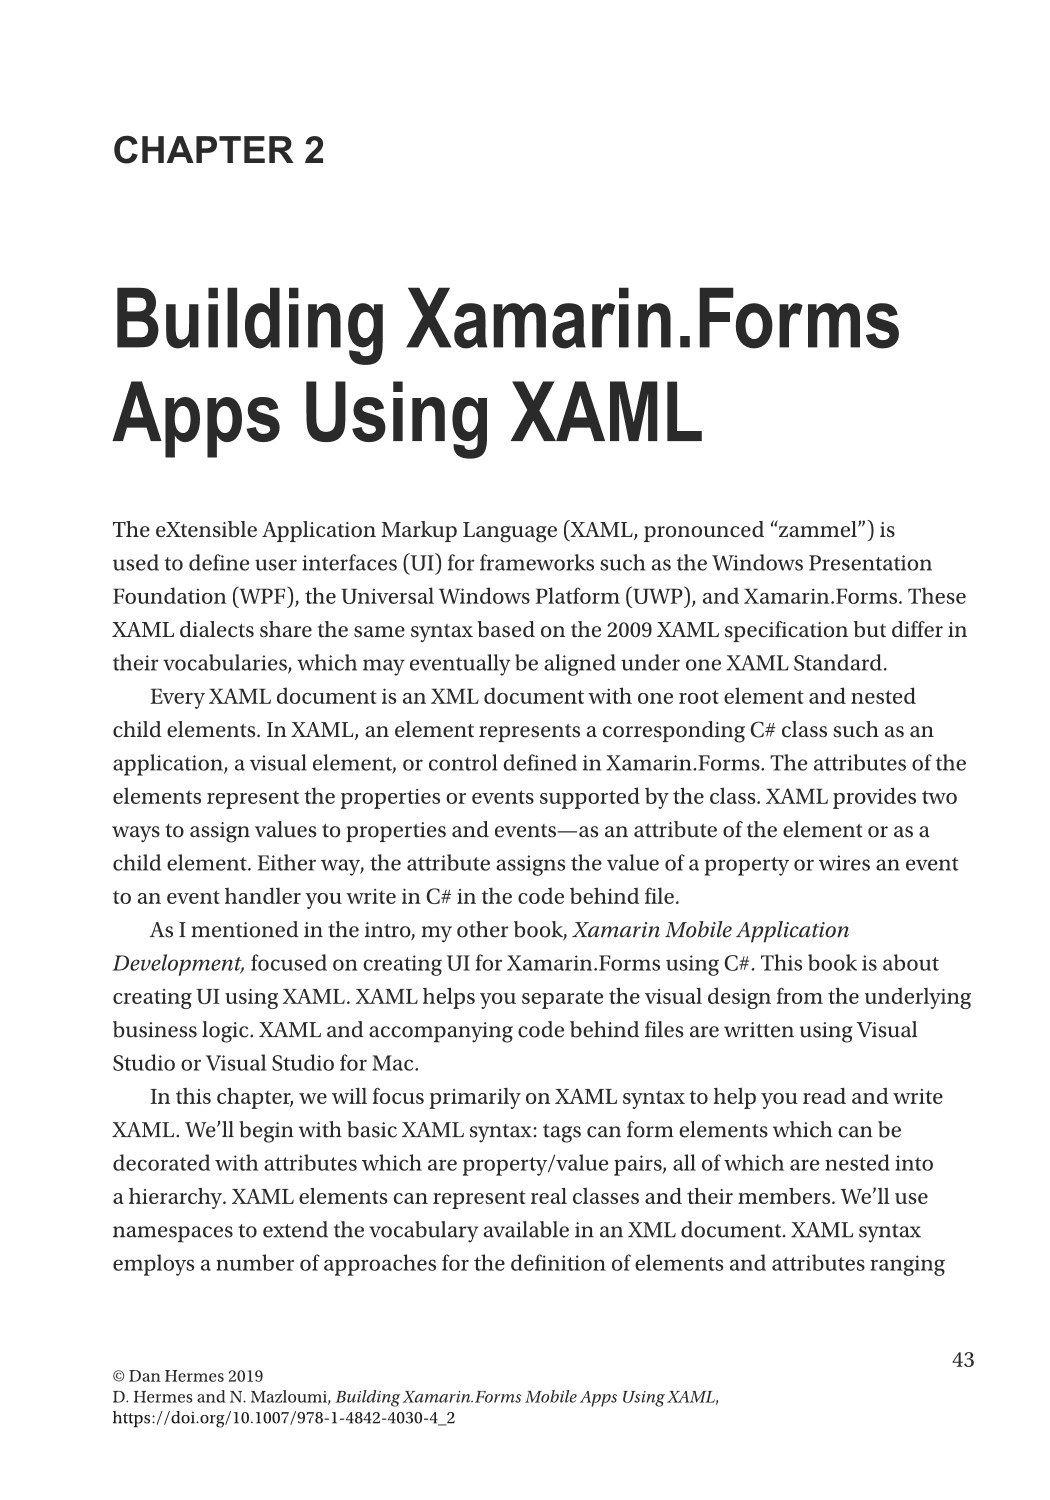 Building Xamarin.Forms Mobile Apps Using XAML: Mobile Cross-Platform XAML and Xamarin.Forms Fundamentals-preview-3